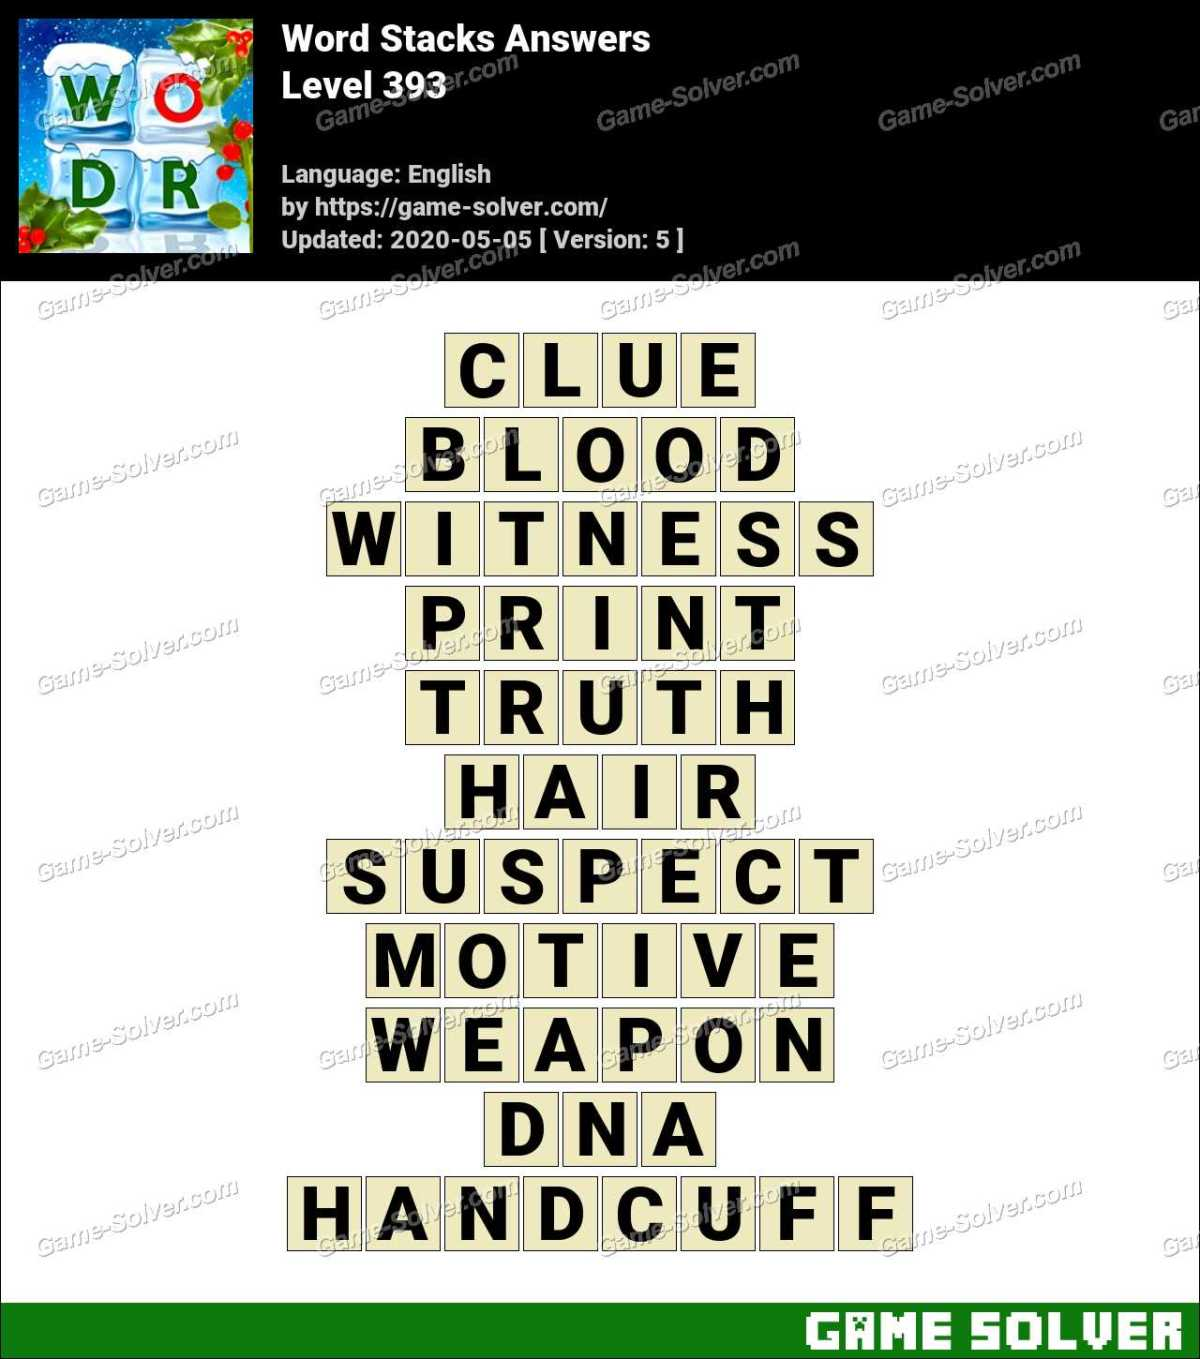 Word Stacks Level 393 Answers